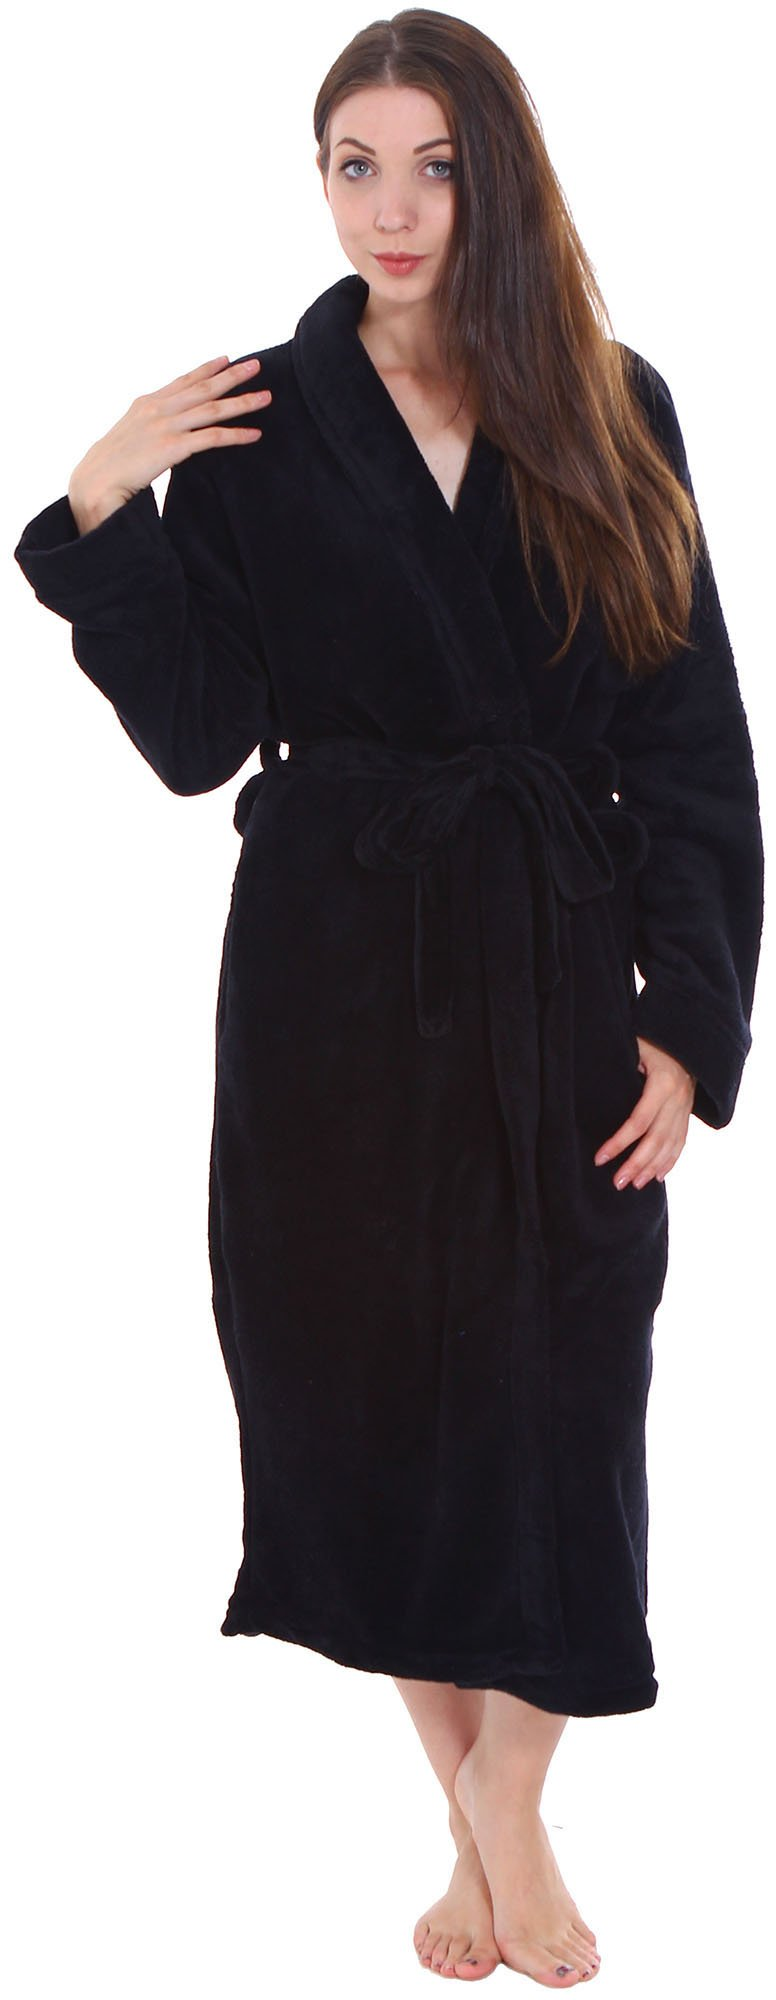 61rK6qODSLL Top 10 Best Bathrobes For Women 2021 - Top Rated Bath Robes